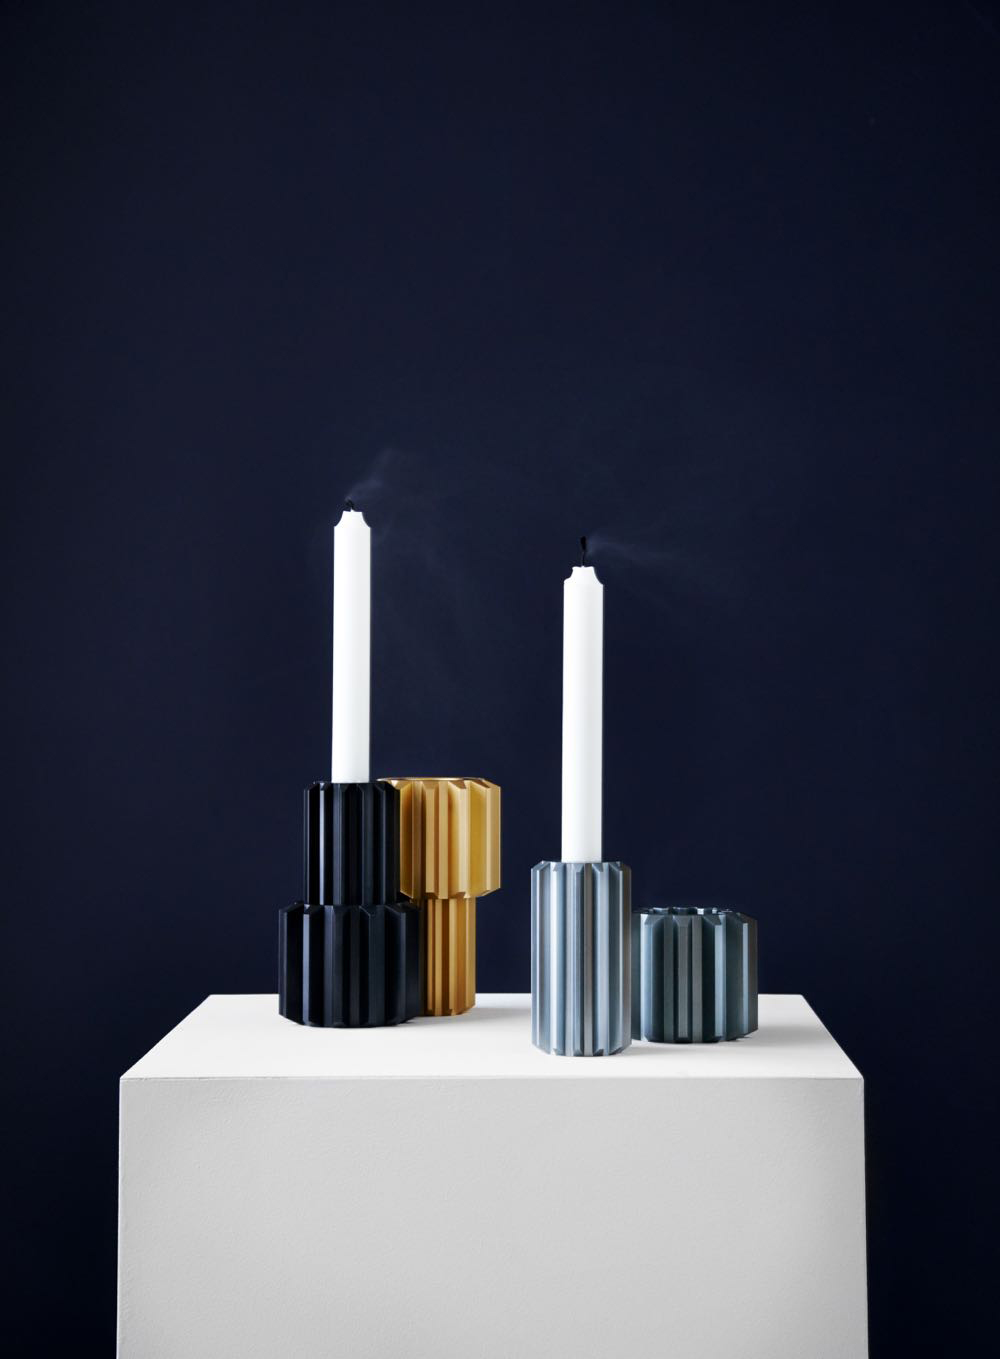 TheGear Candle Holder by Rikke Frost forNEW WORKS.